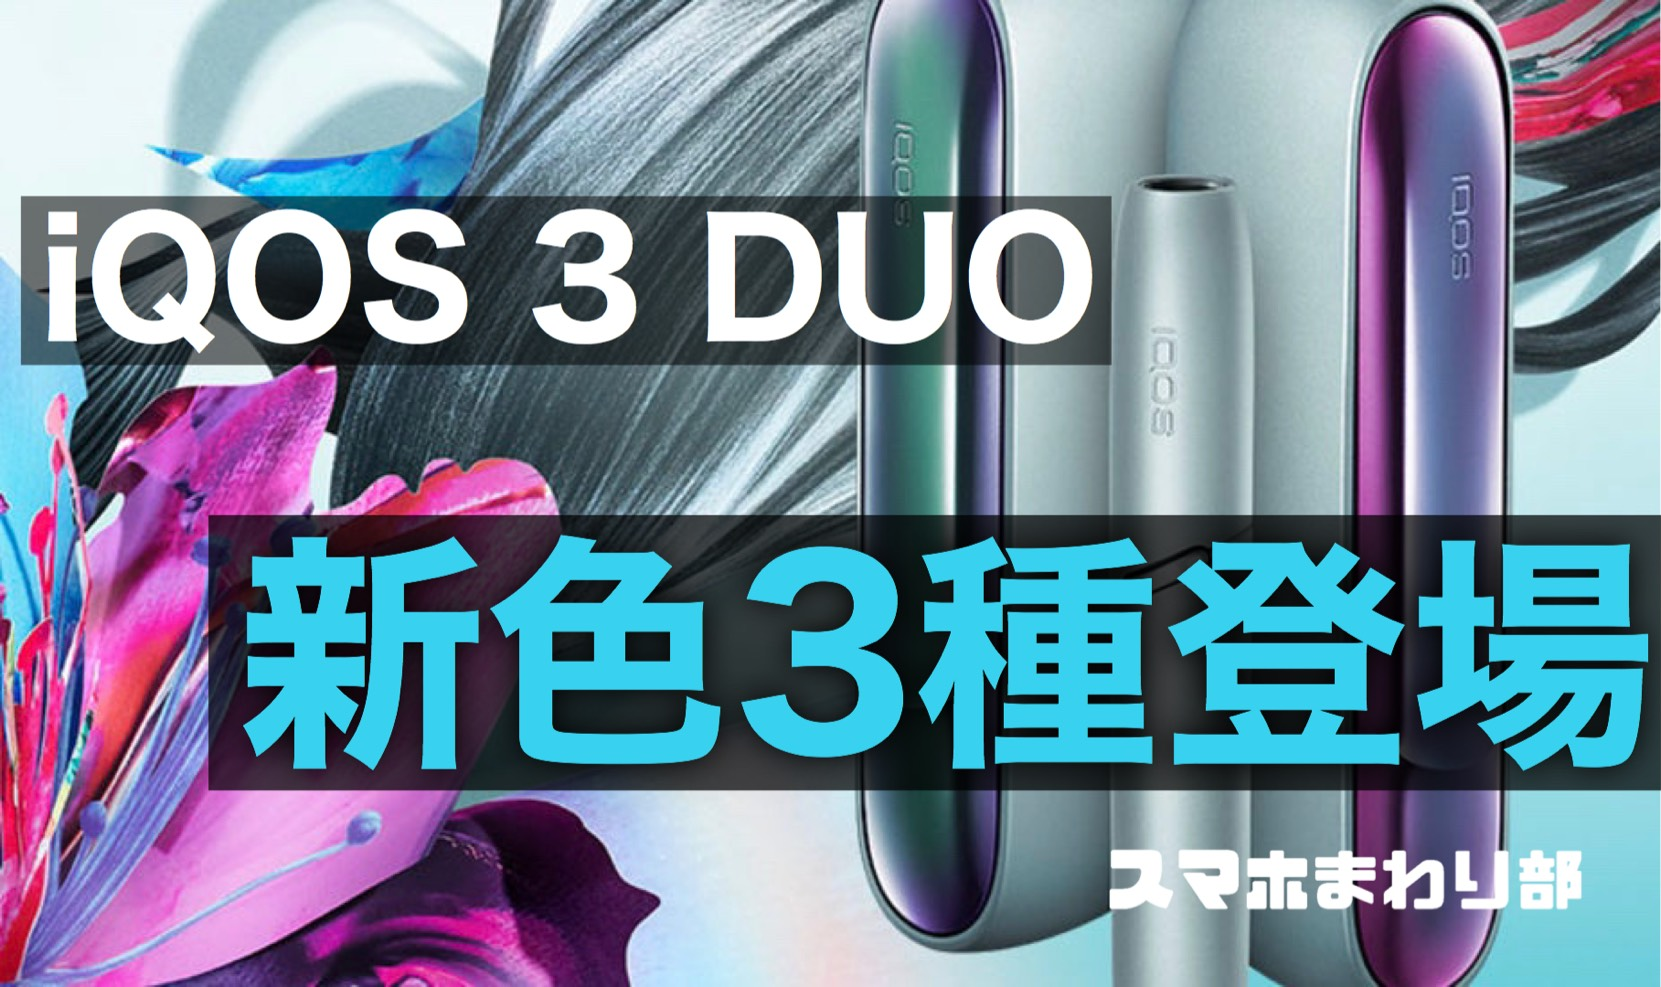 iqos3duo-new-color-springlimited